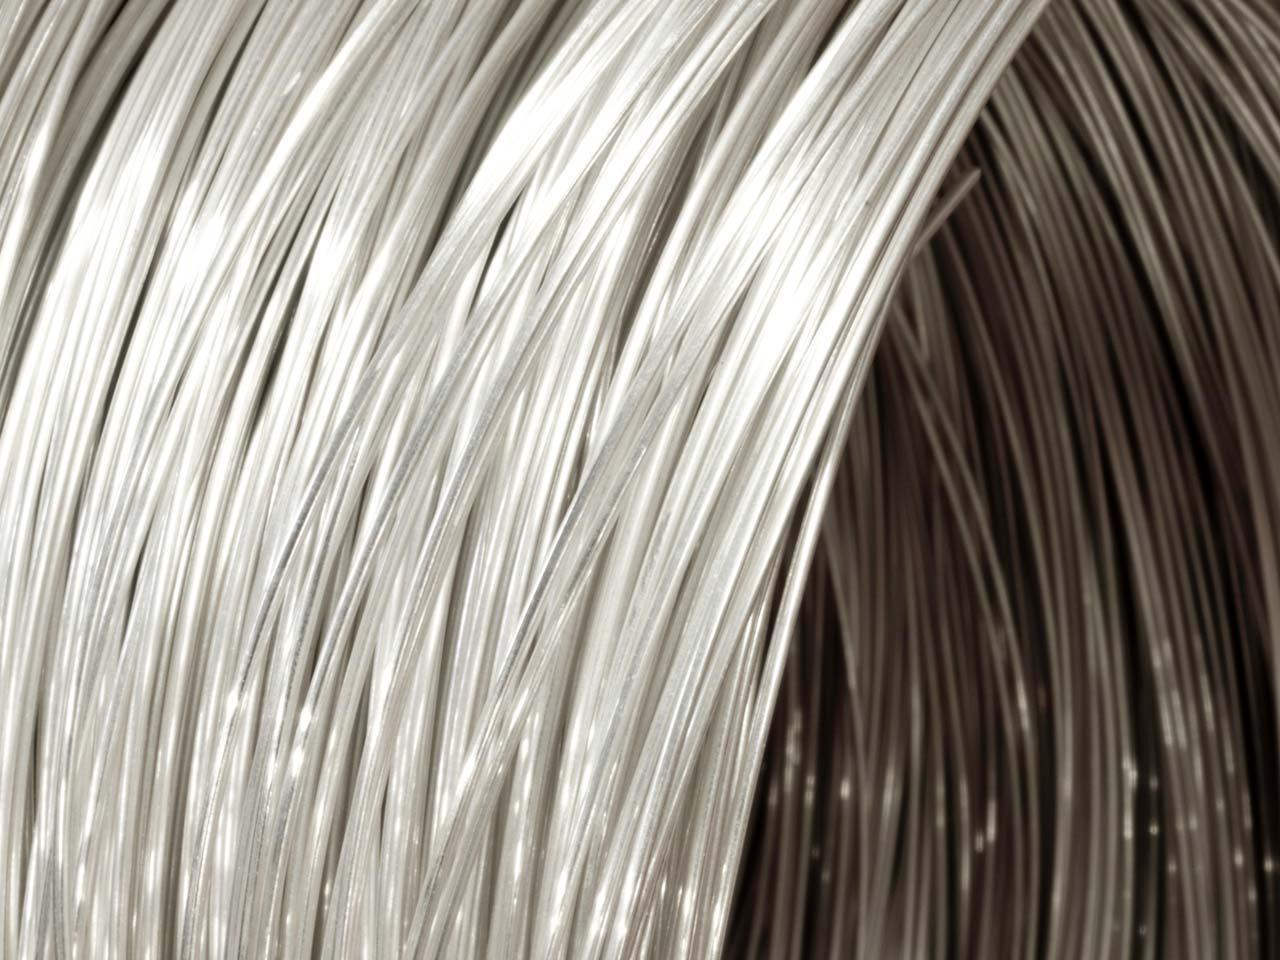 18ct Medium White Fairtrade Round  Wire 2.50mm